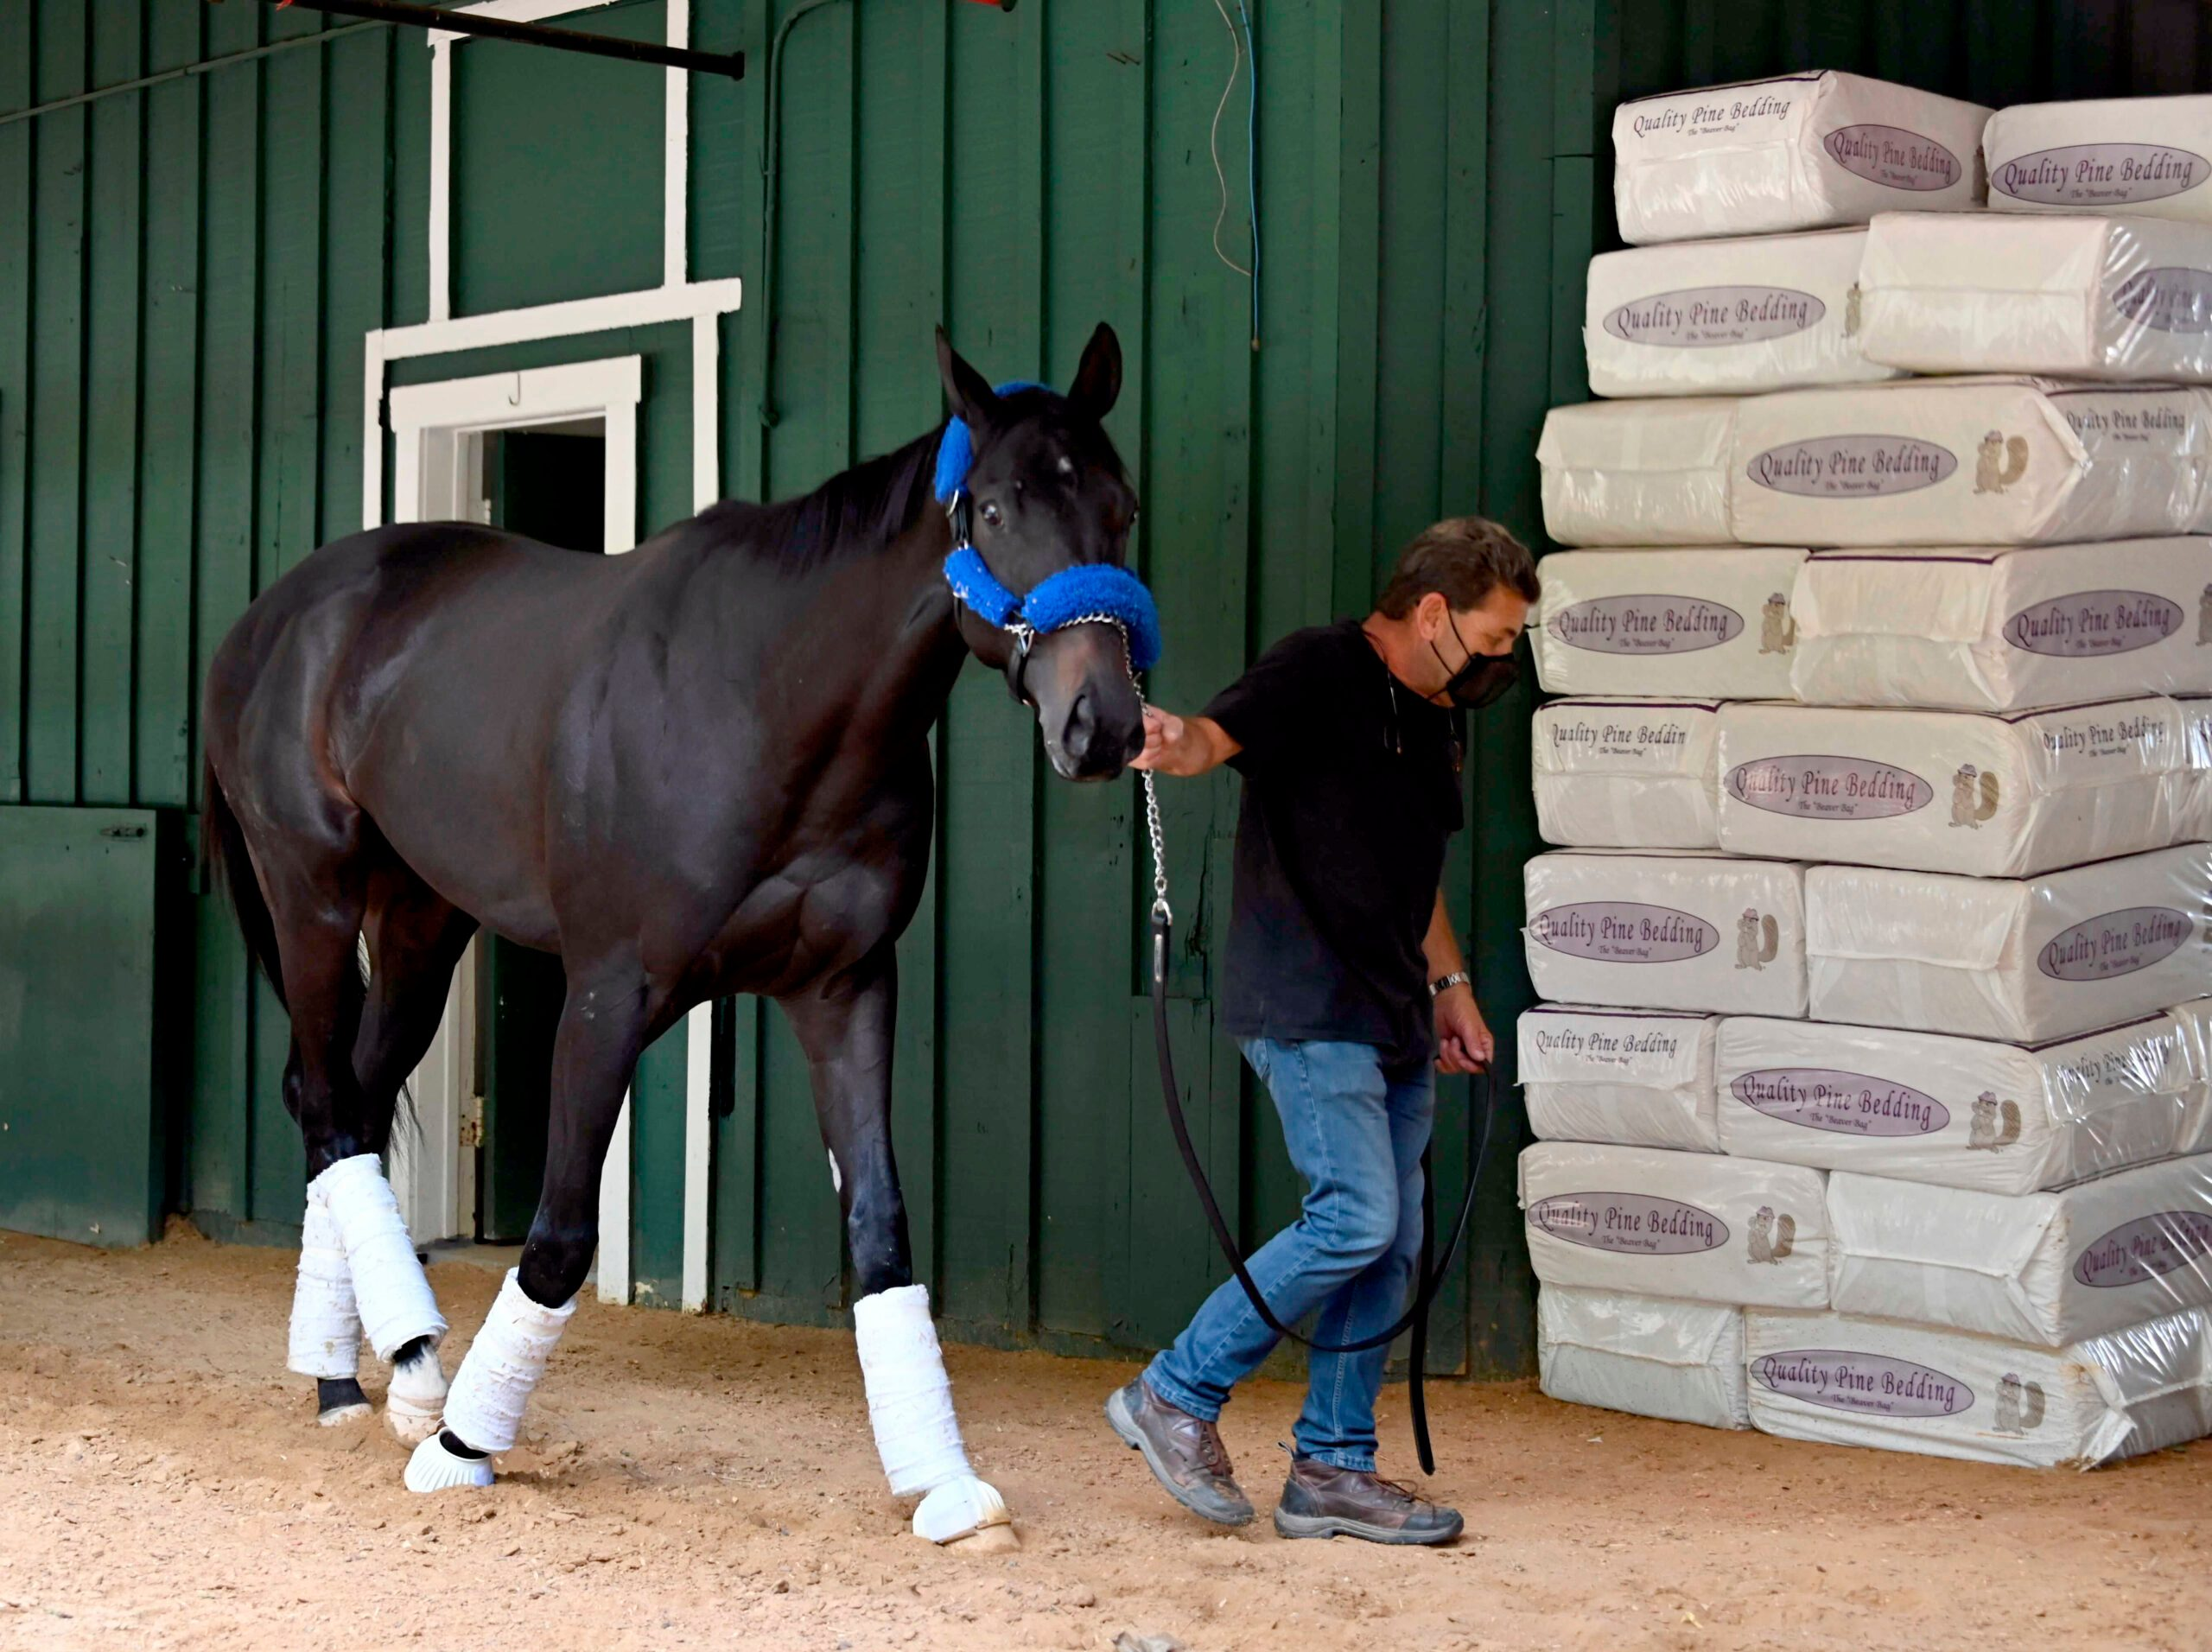 Baffert: Anti-Fungal Meds Given to Derby Winner Had Steroid - snopes